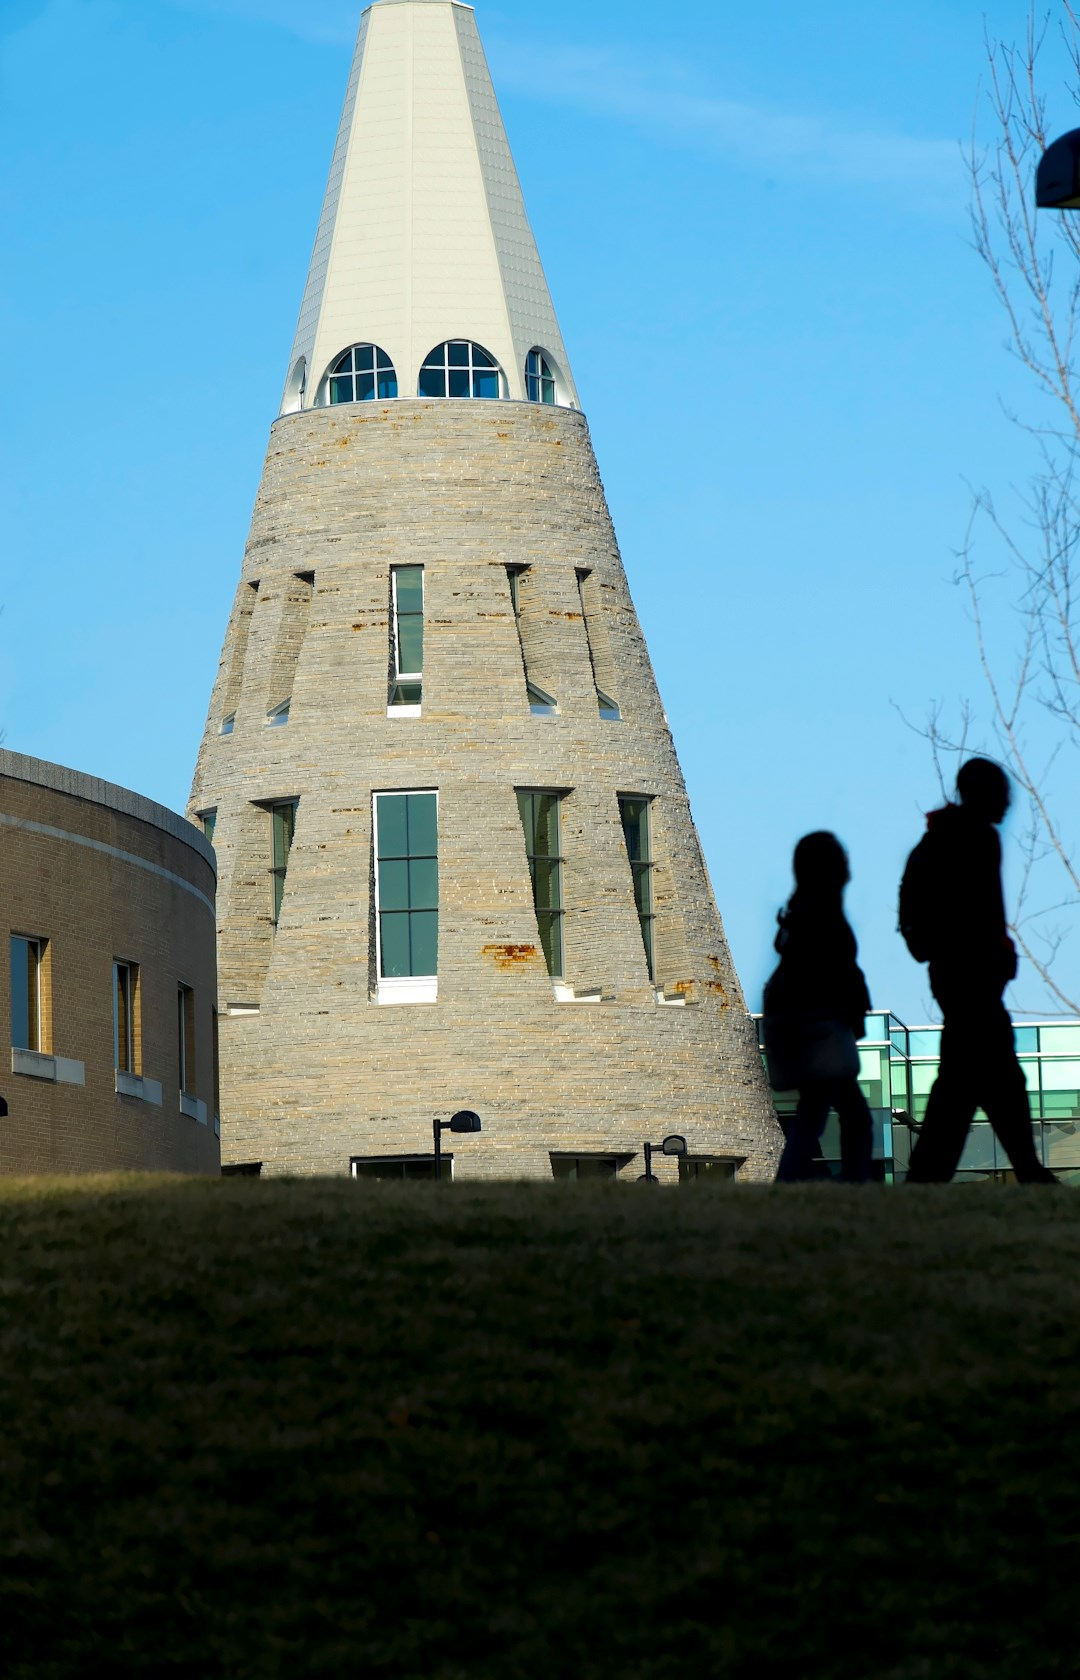 vert_student silhouetted with UC cone